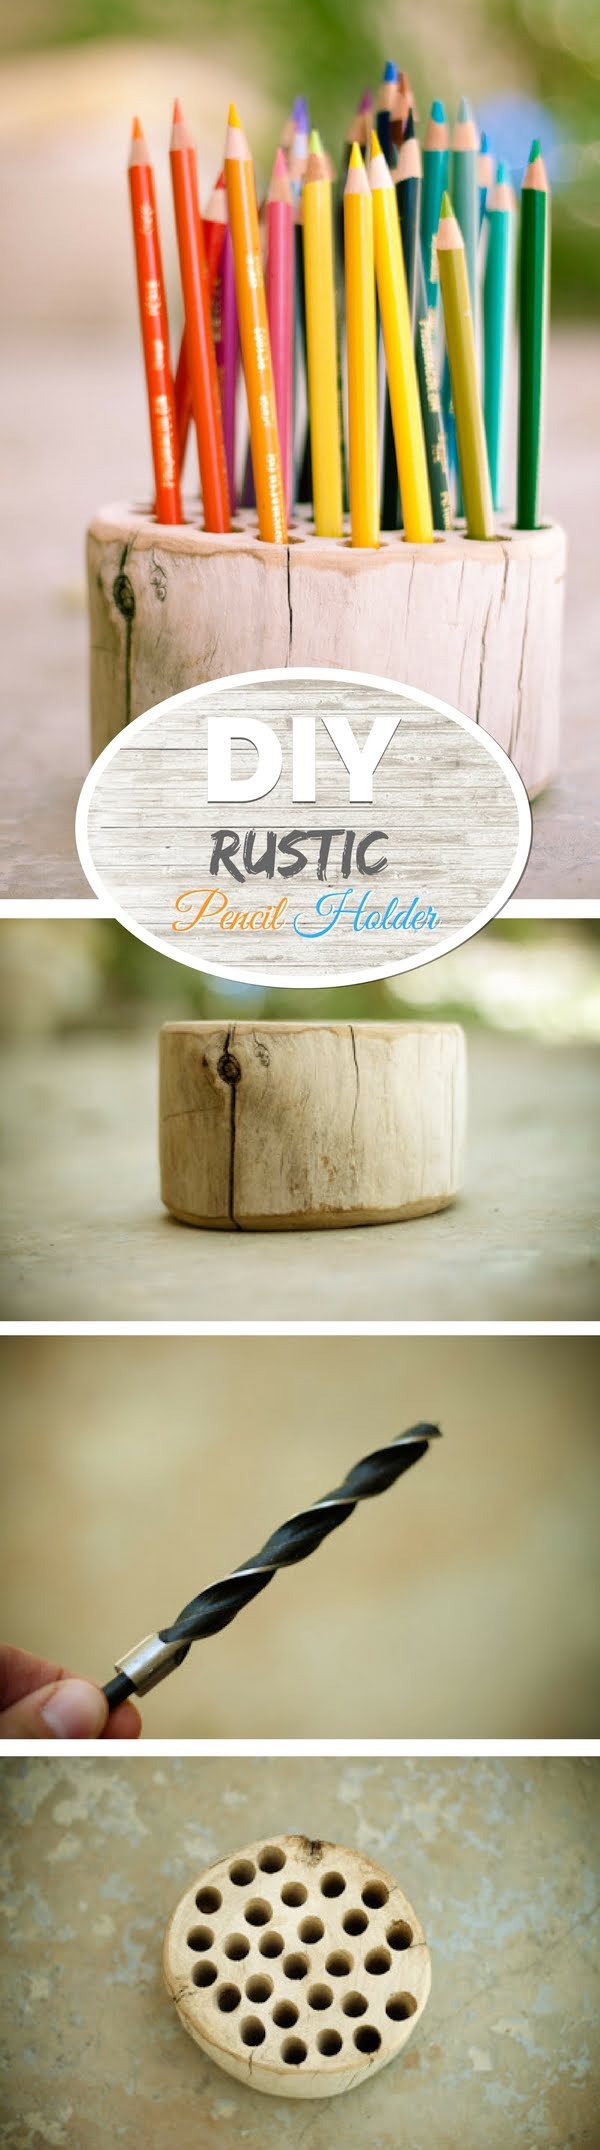 Check out how to make an easy DIY rustic pencil holder